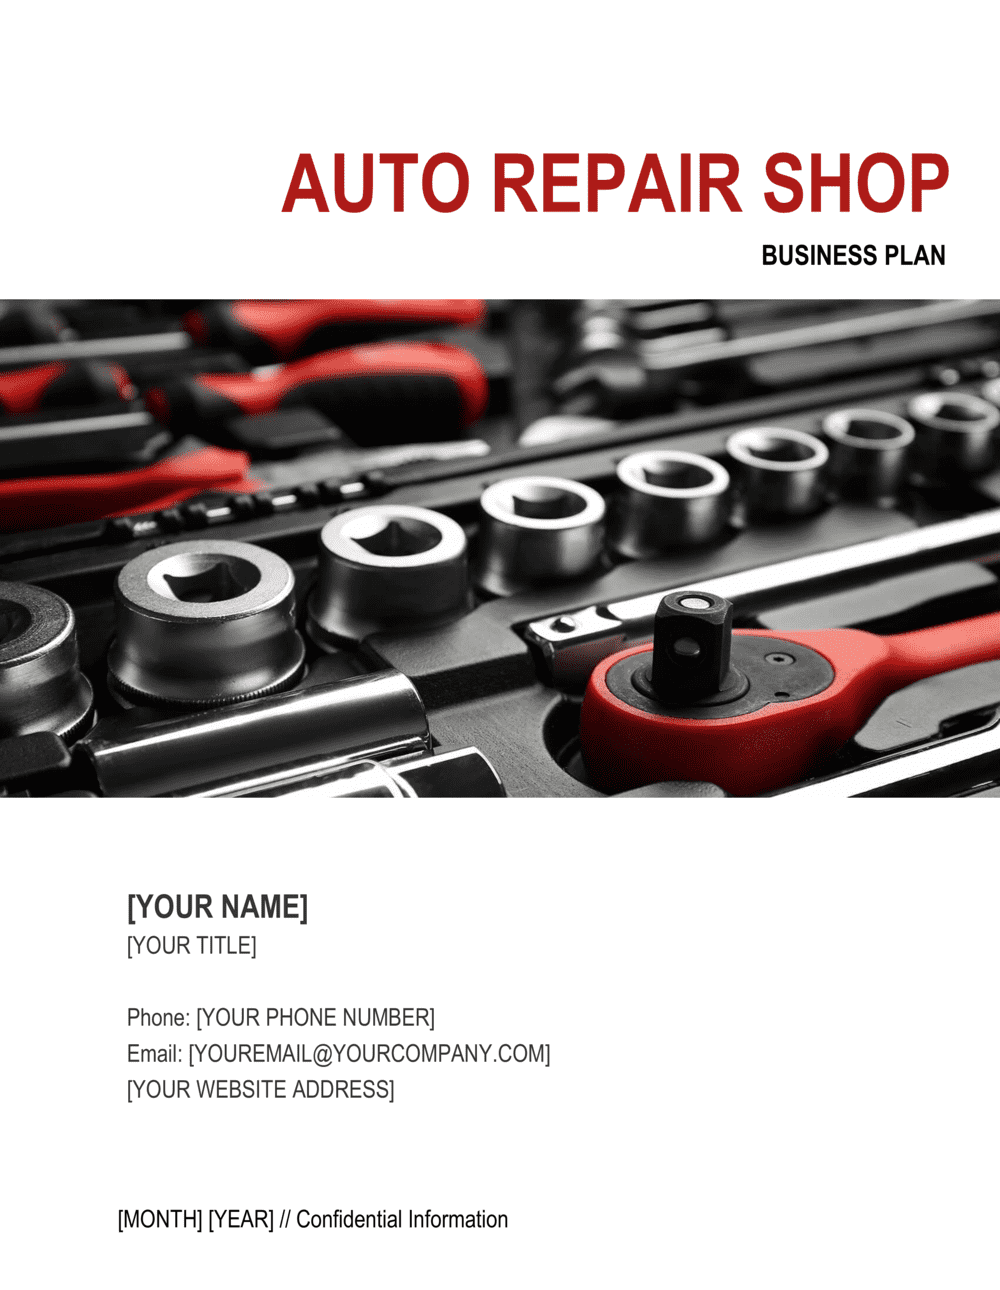 Business-in-a-Box's Auto Repair Shop Business Plan Template